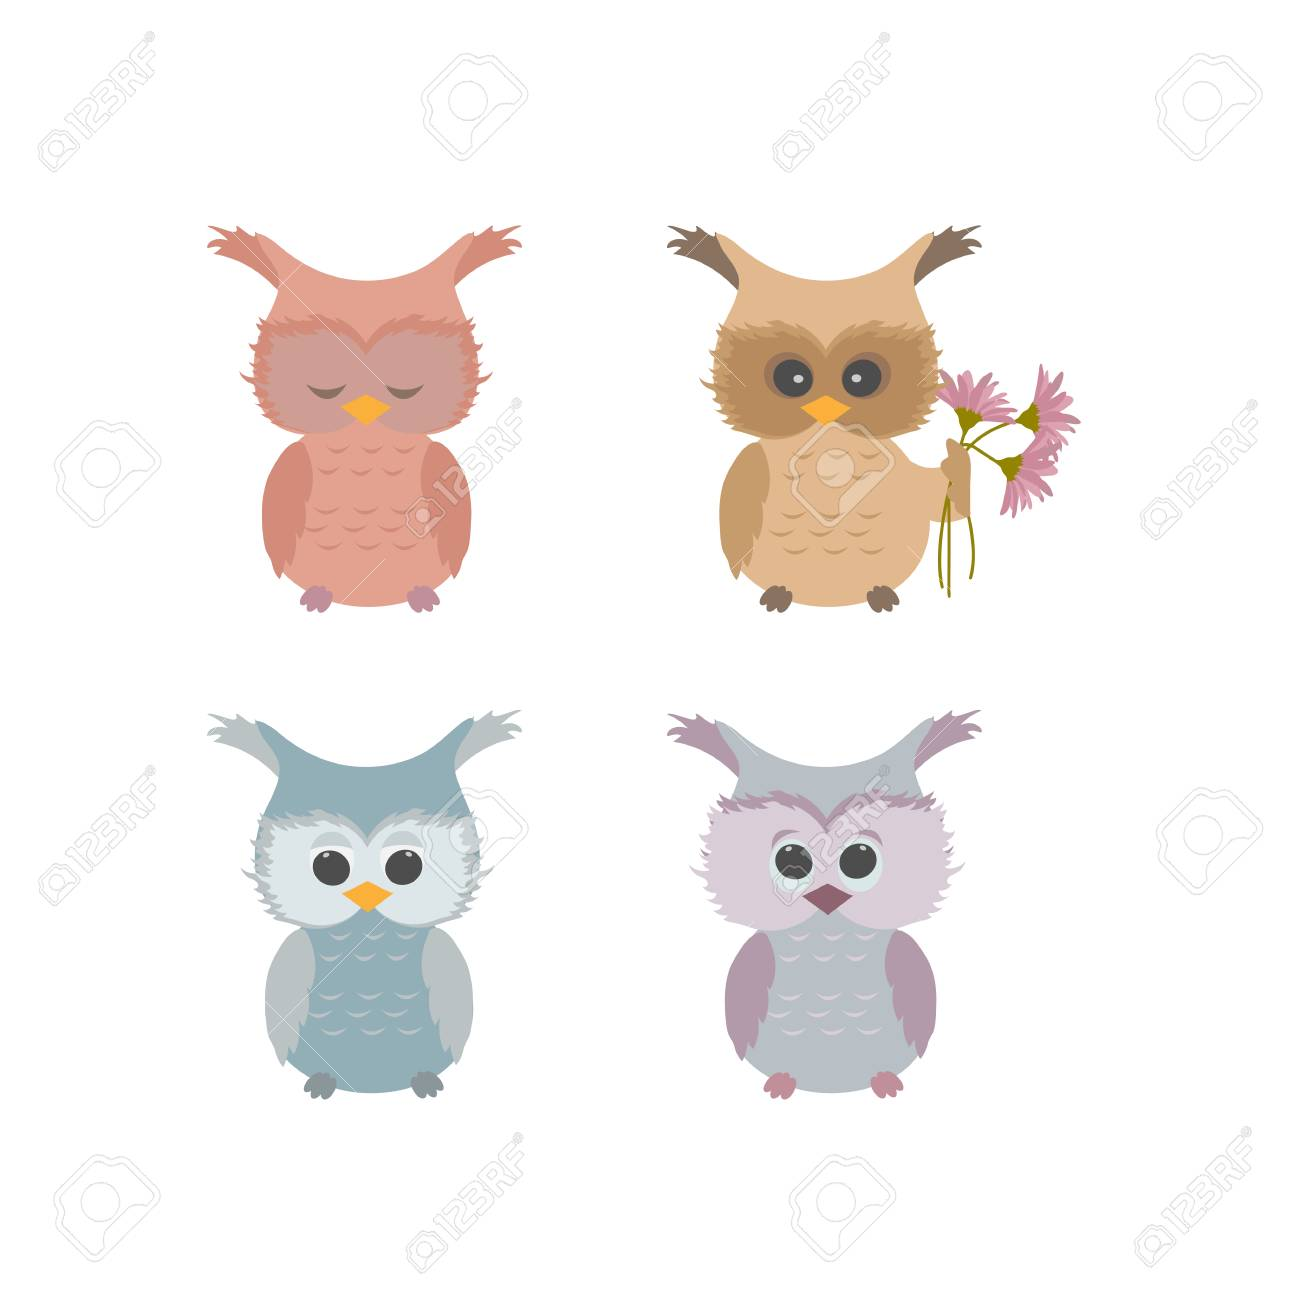 Cute Owl Decor Vector Illustration Of A Set Of Baby Cute Owls On White Isolated